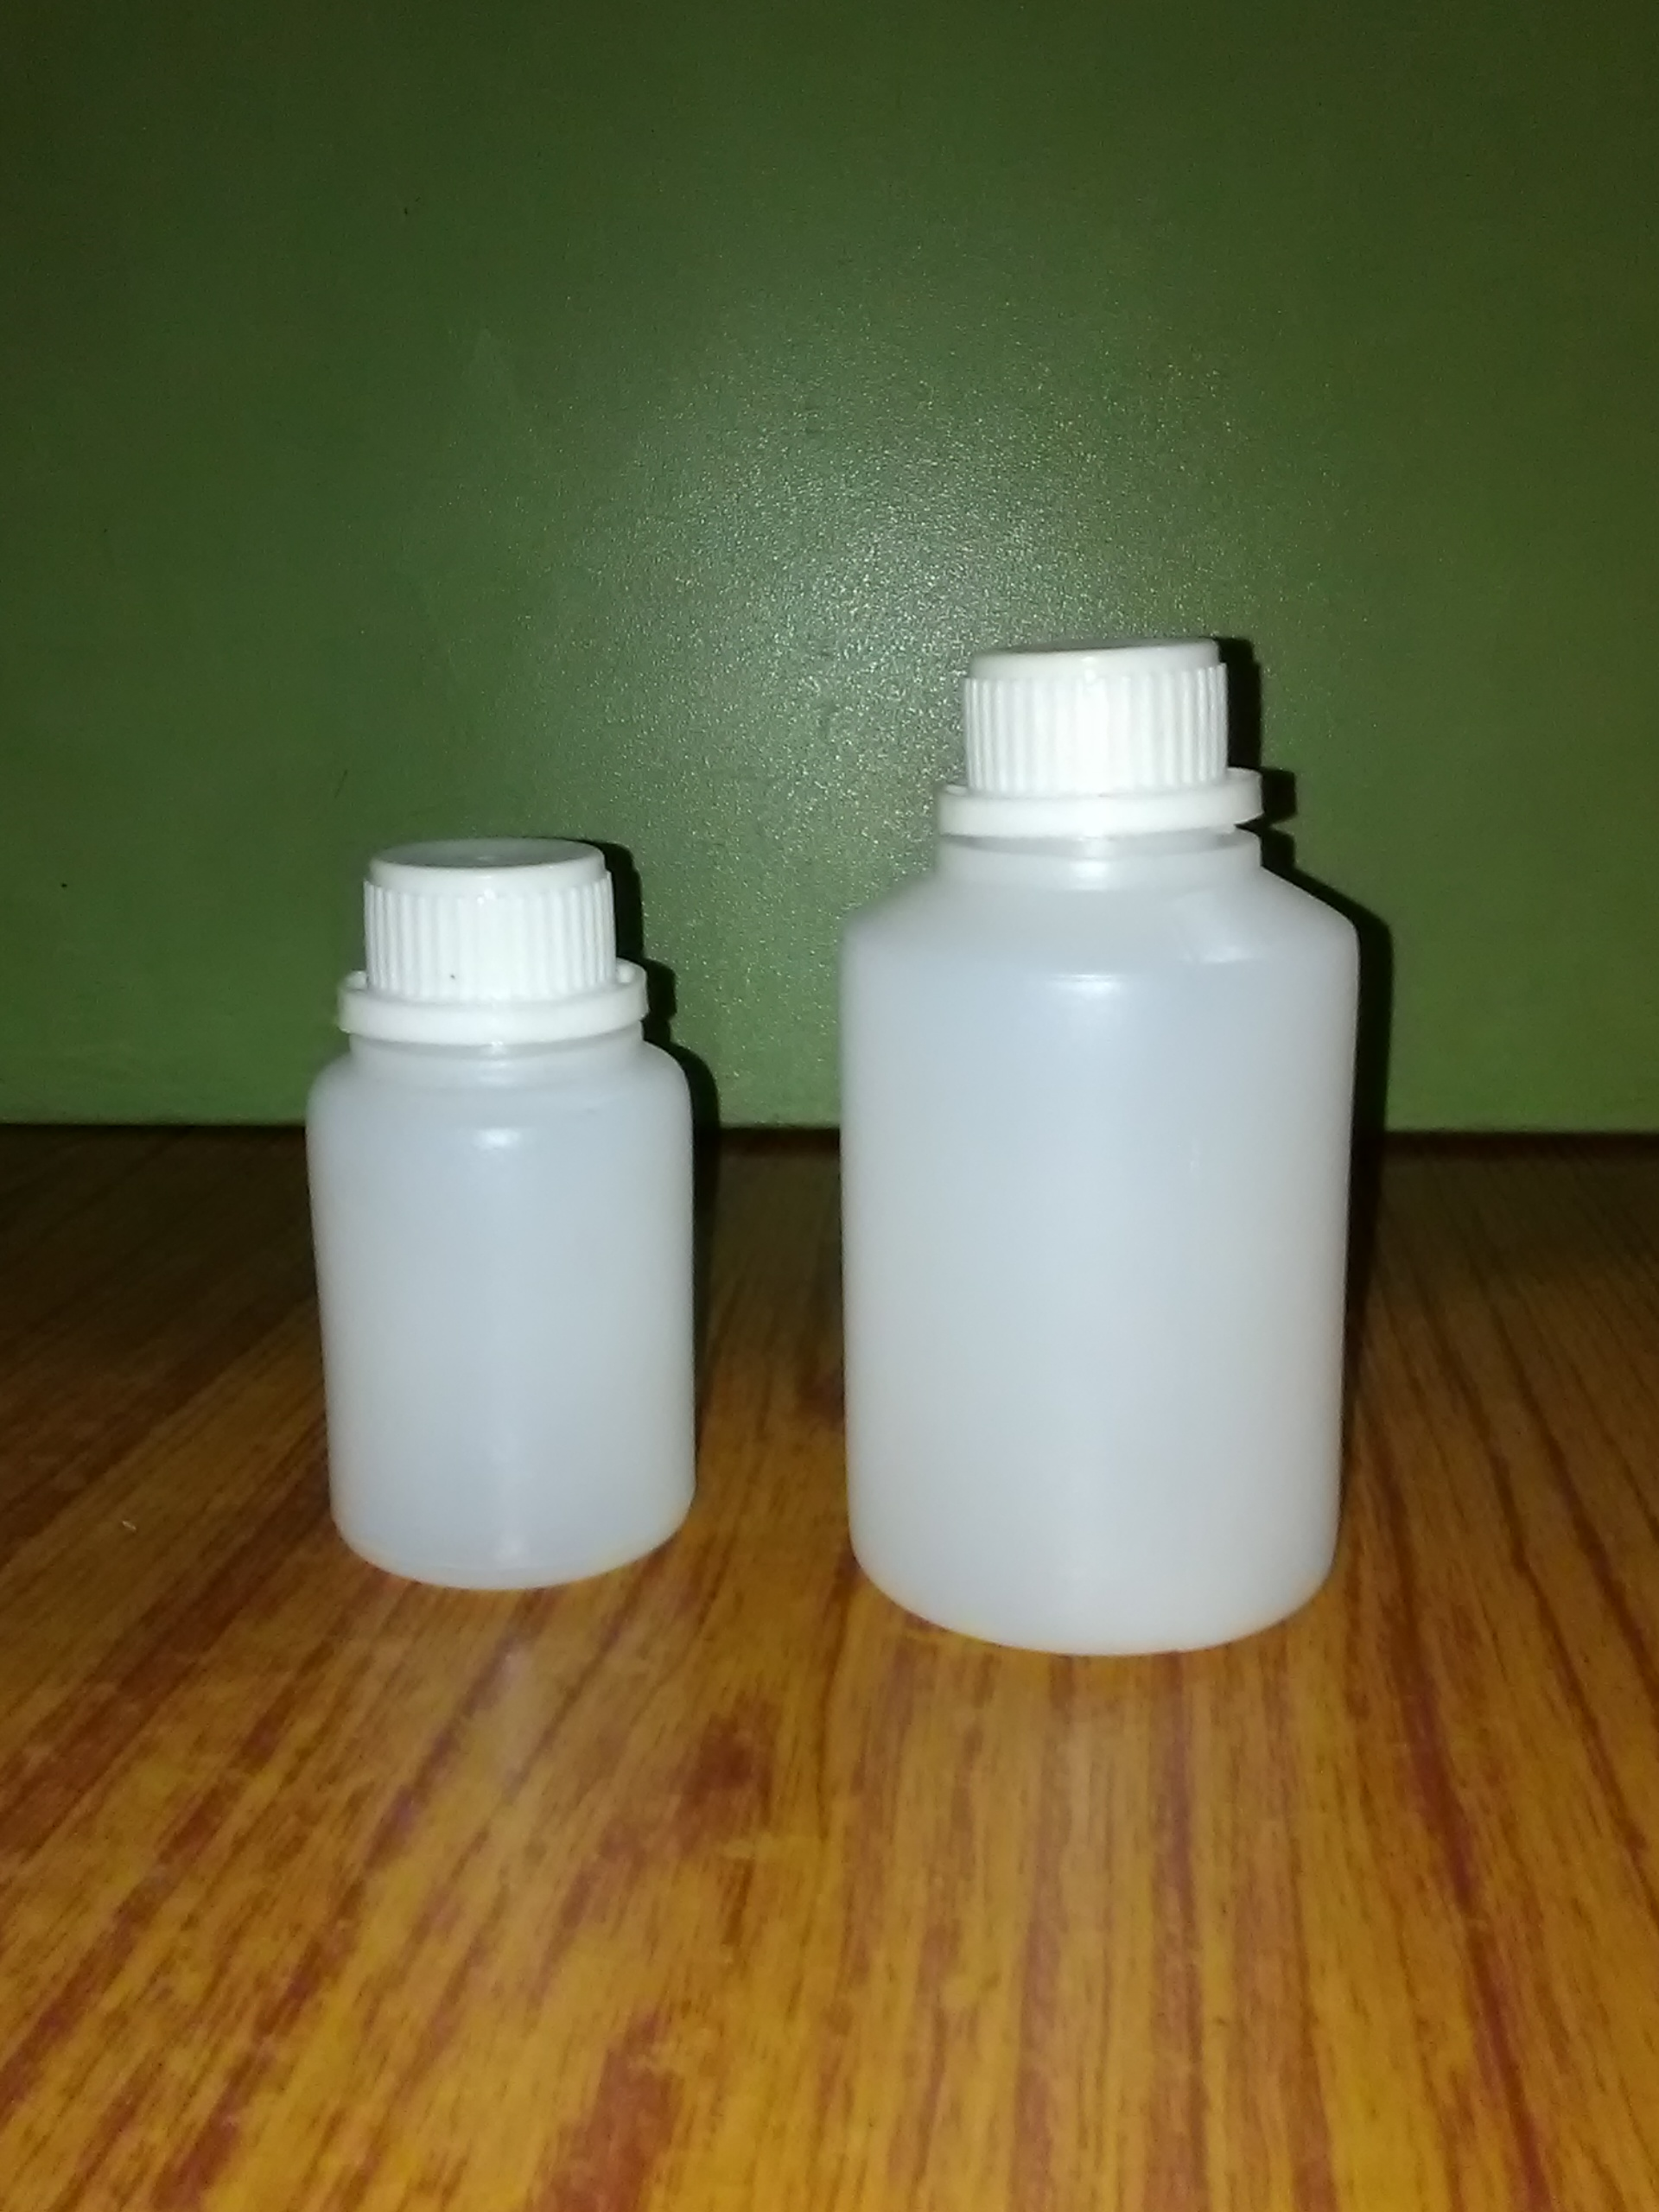 Seal Cap Bottle